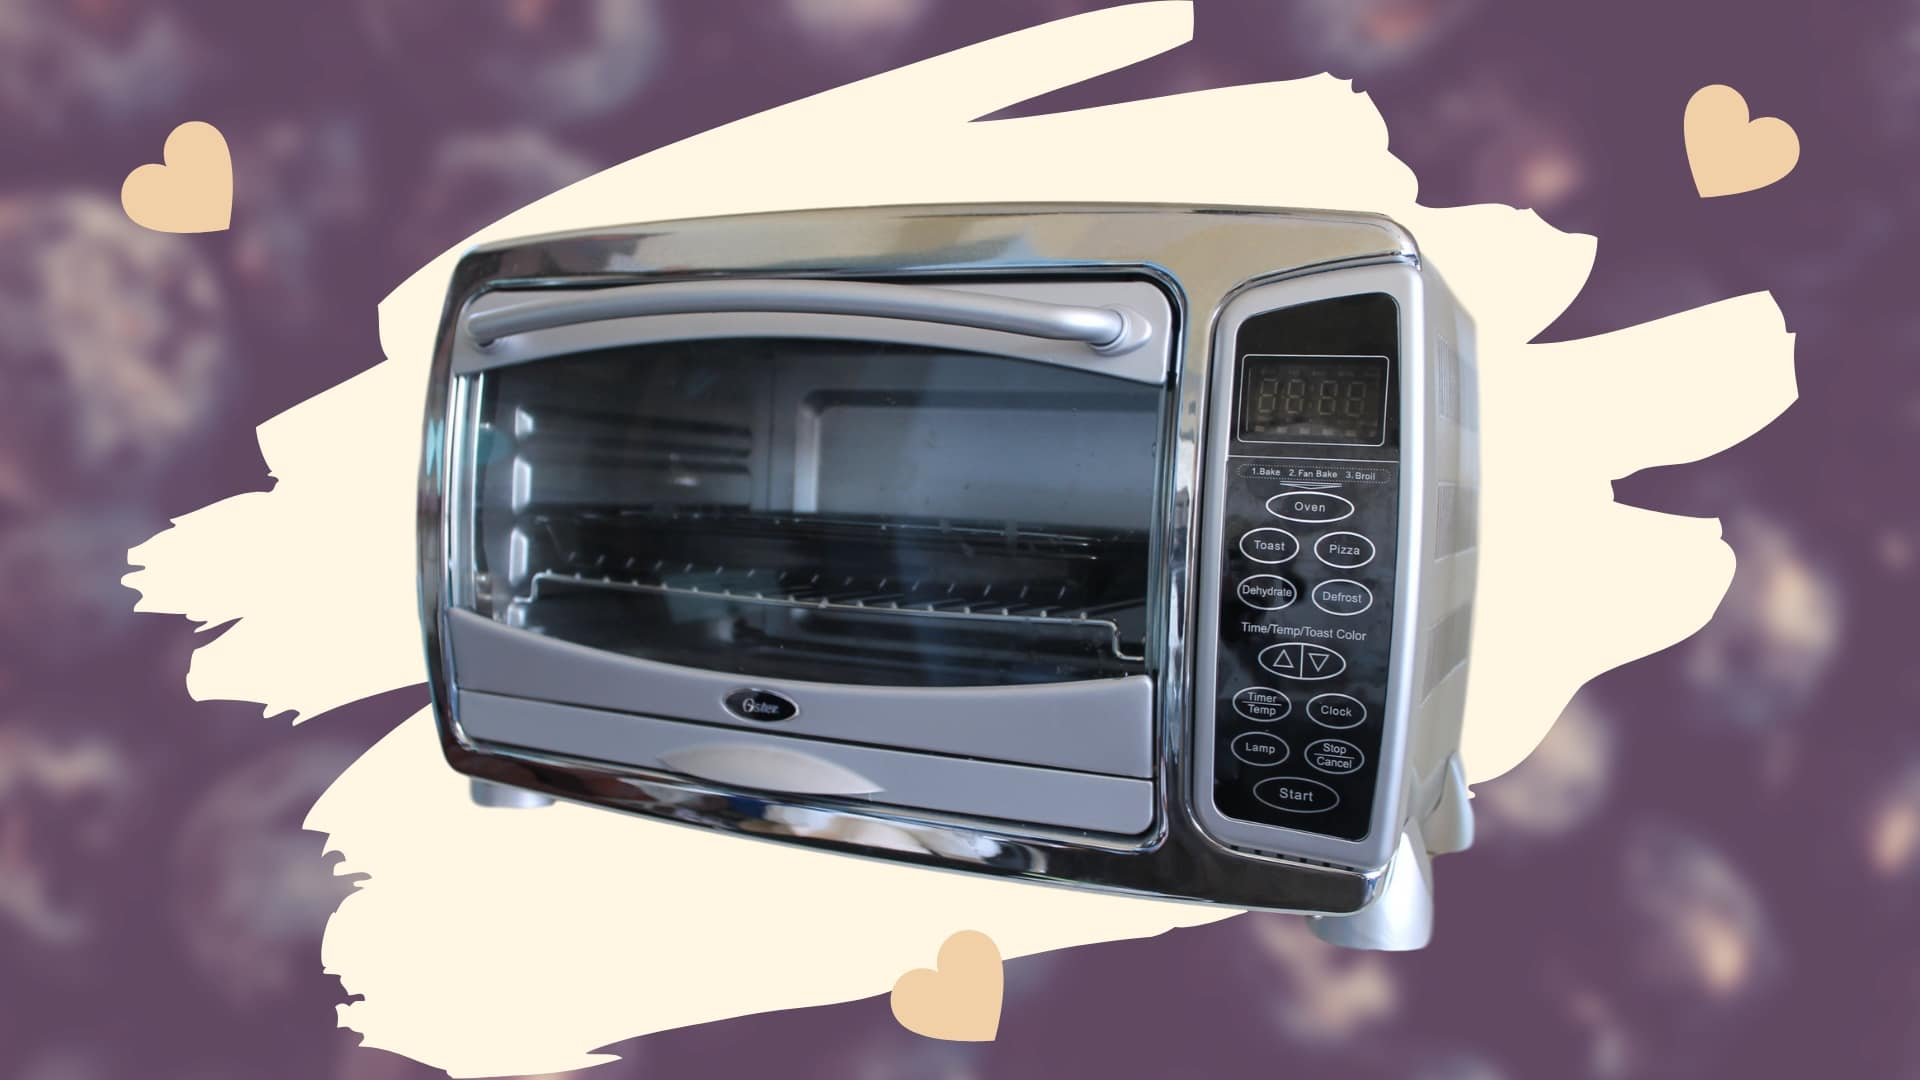 Featured image for Oster TSSTTVMNDG Toaster Oven Review